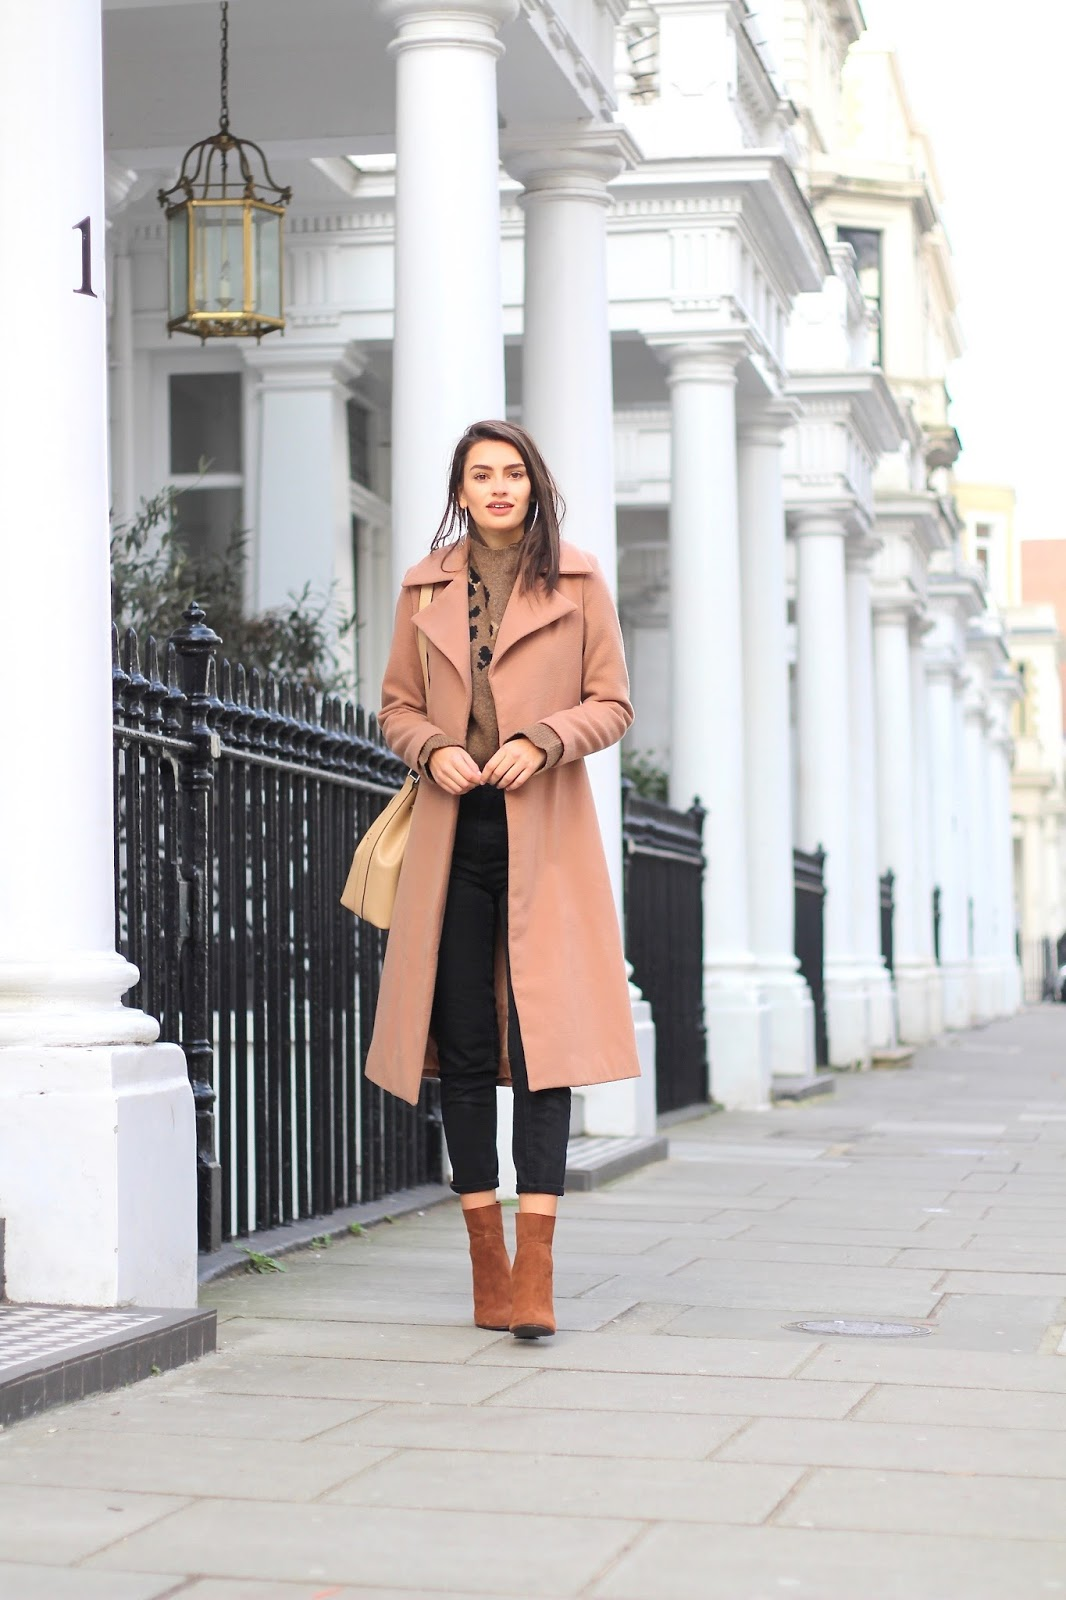 london fashion blogger peexo